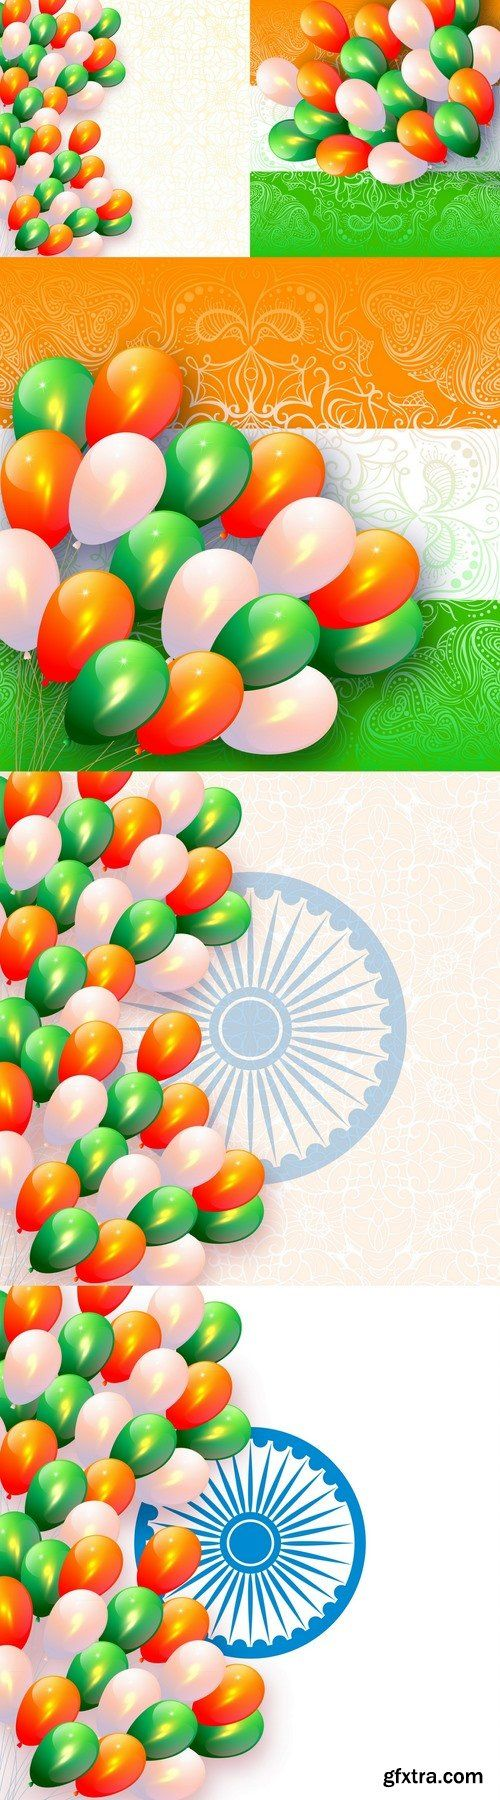 Indian flag colors. Independence Day http://webtutorsliv.ml/threads/indian-flag-colors-independence-day.26076/